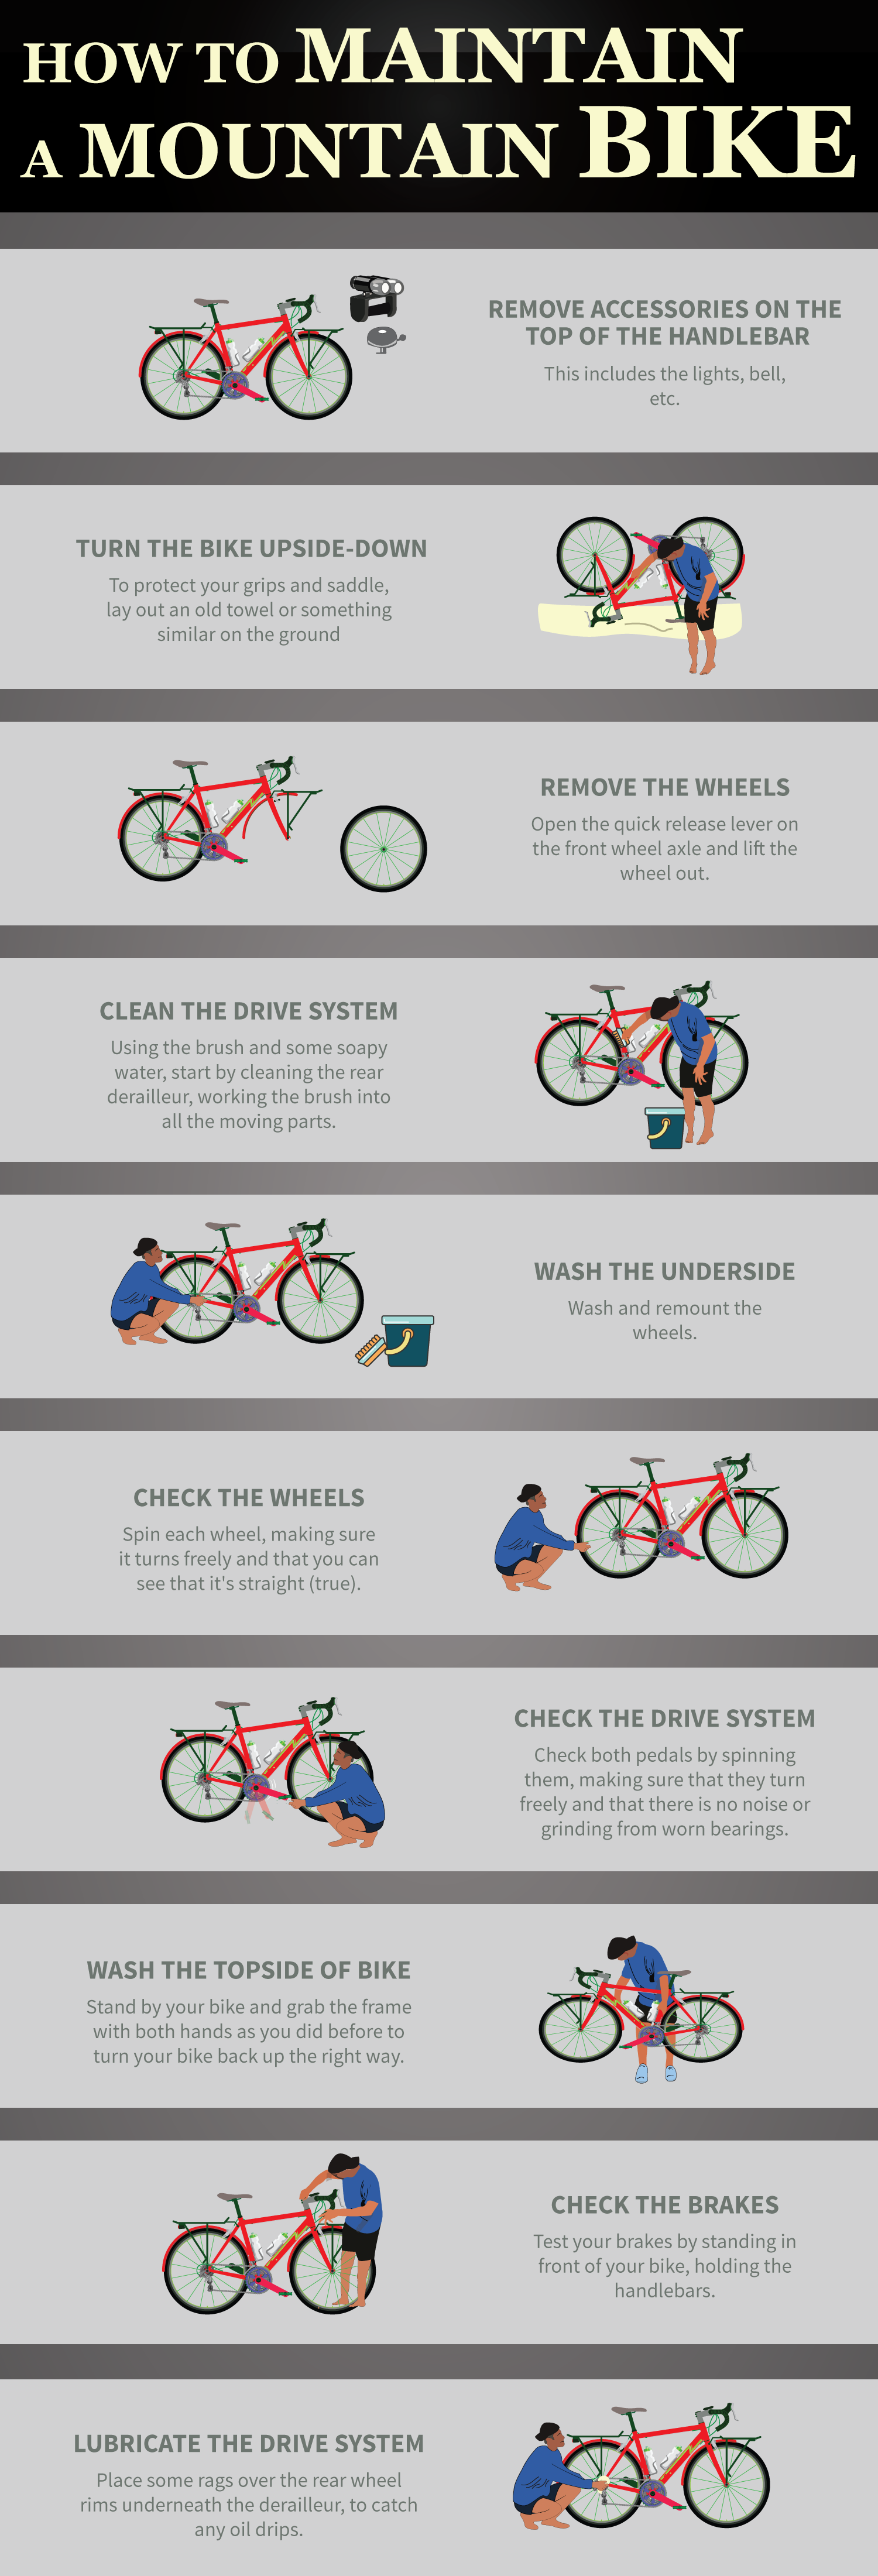 How To Maintain A Mountain Bike [Infographic]